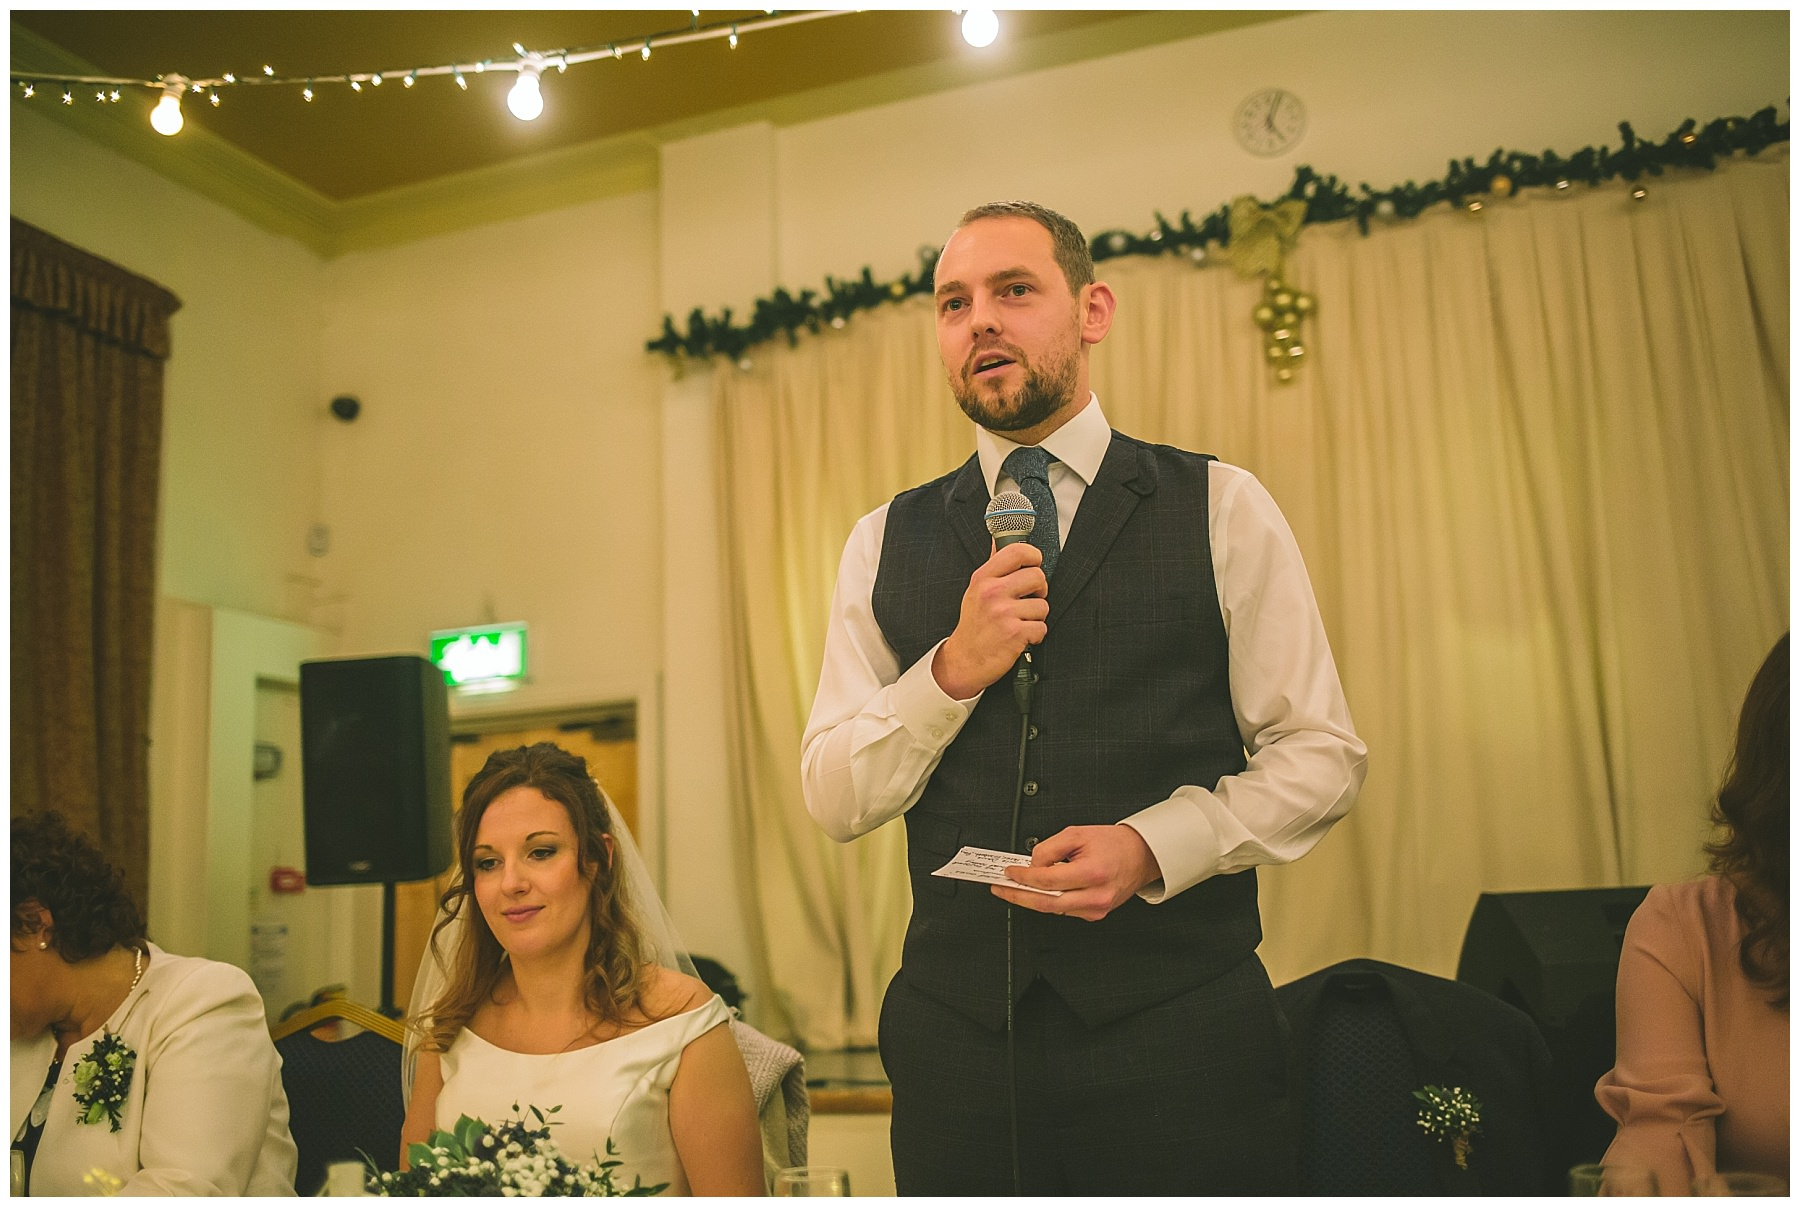 Grooms speech at Ramsbottom civic hall